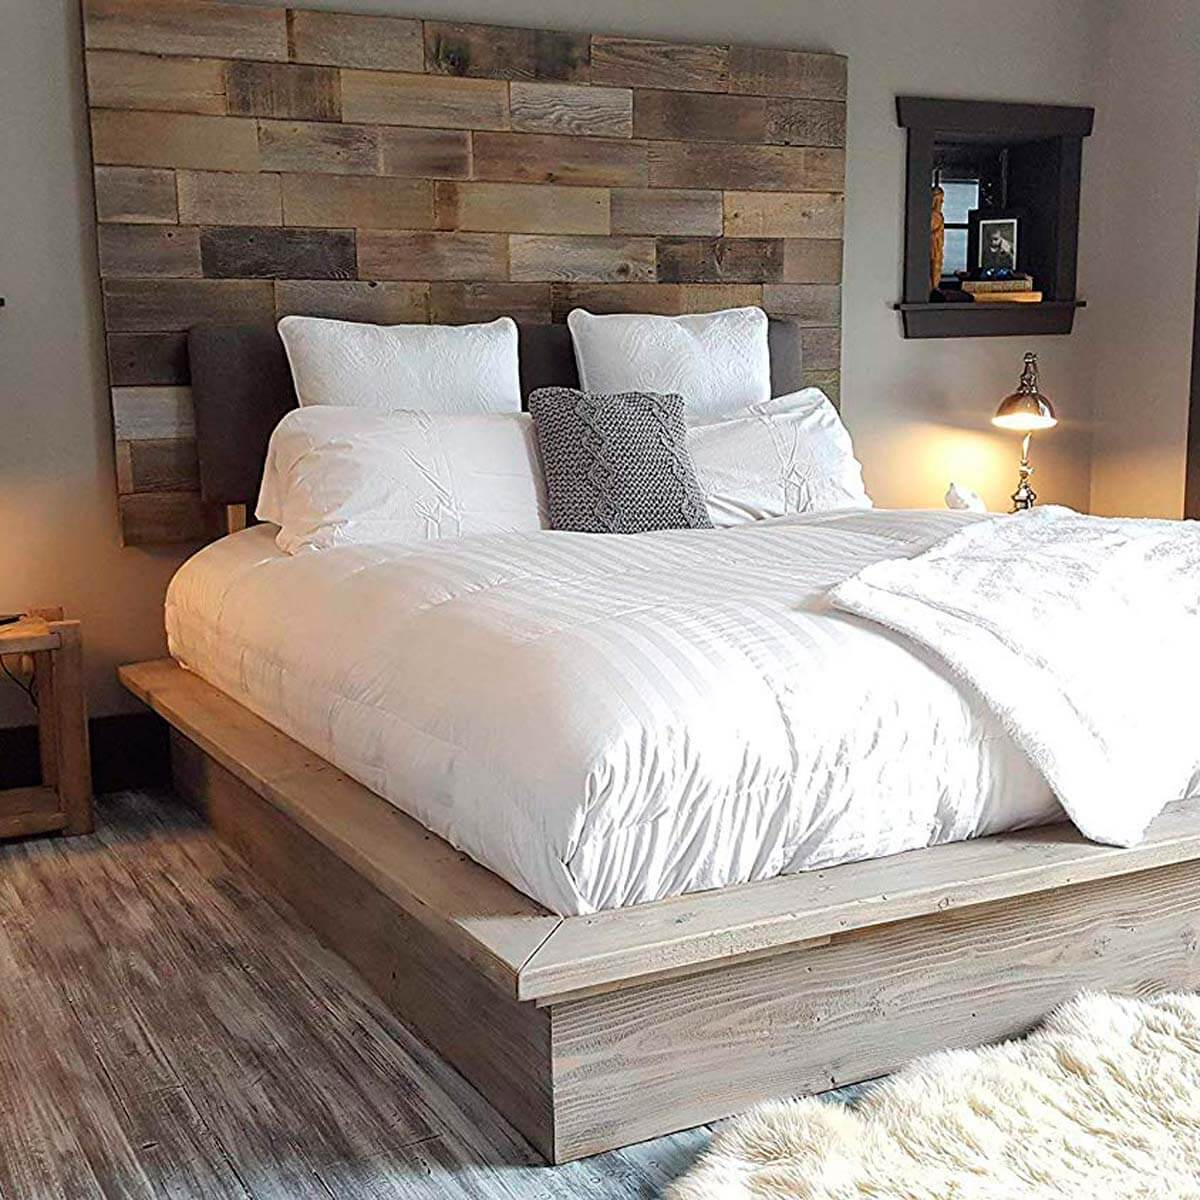 REPURPOSED WOOD FURNITURE ACCENT WALL